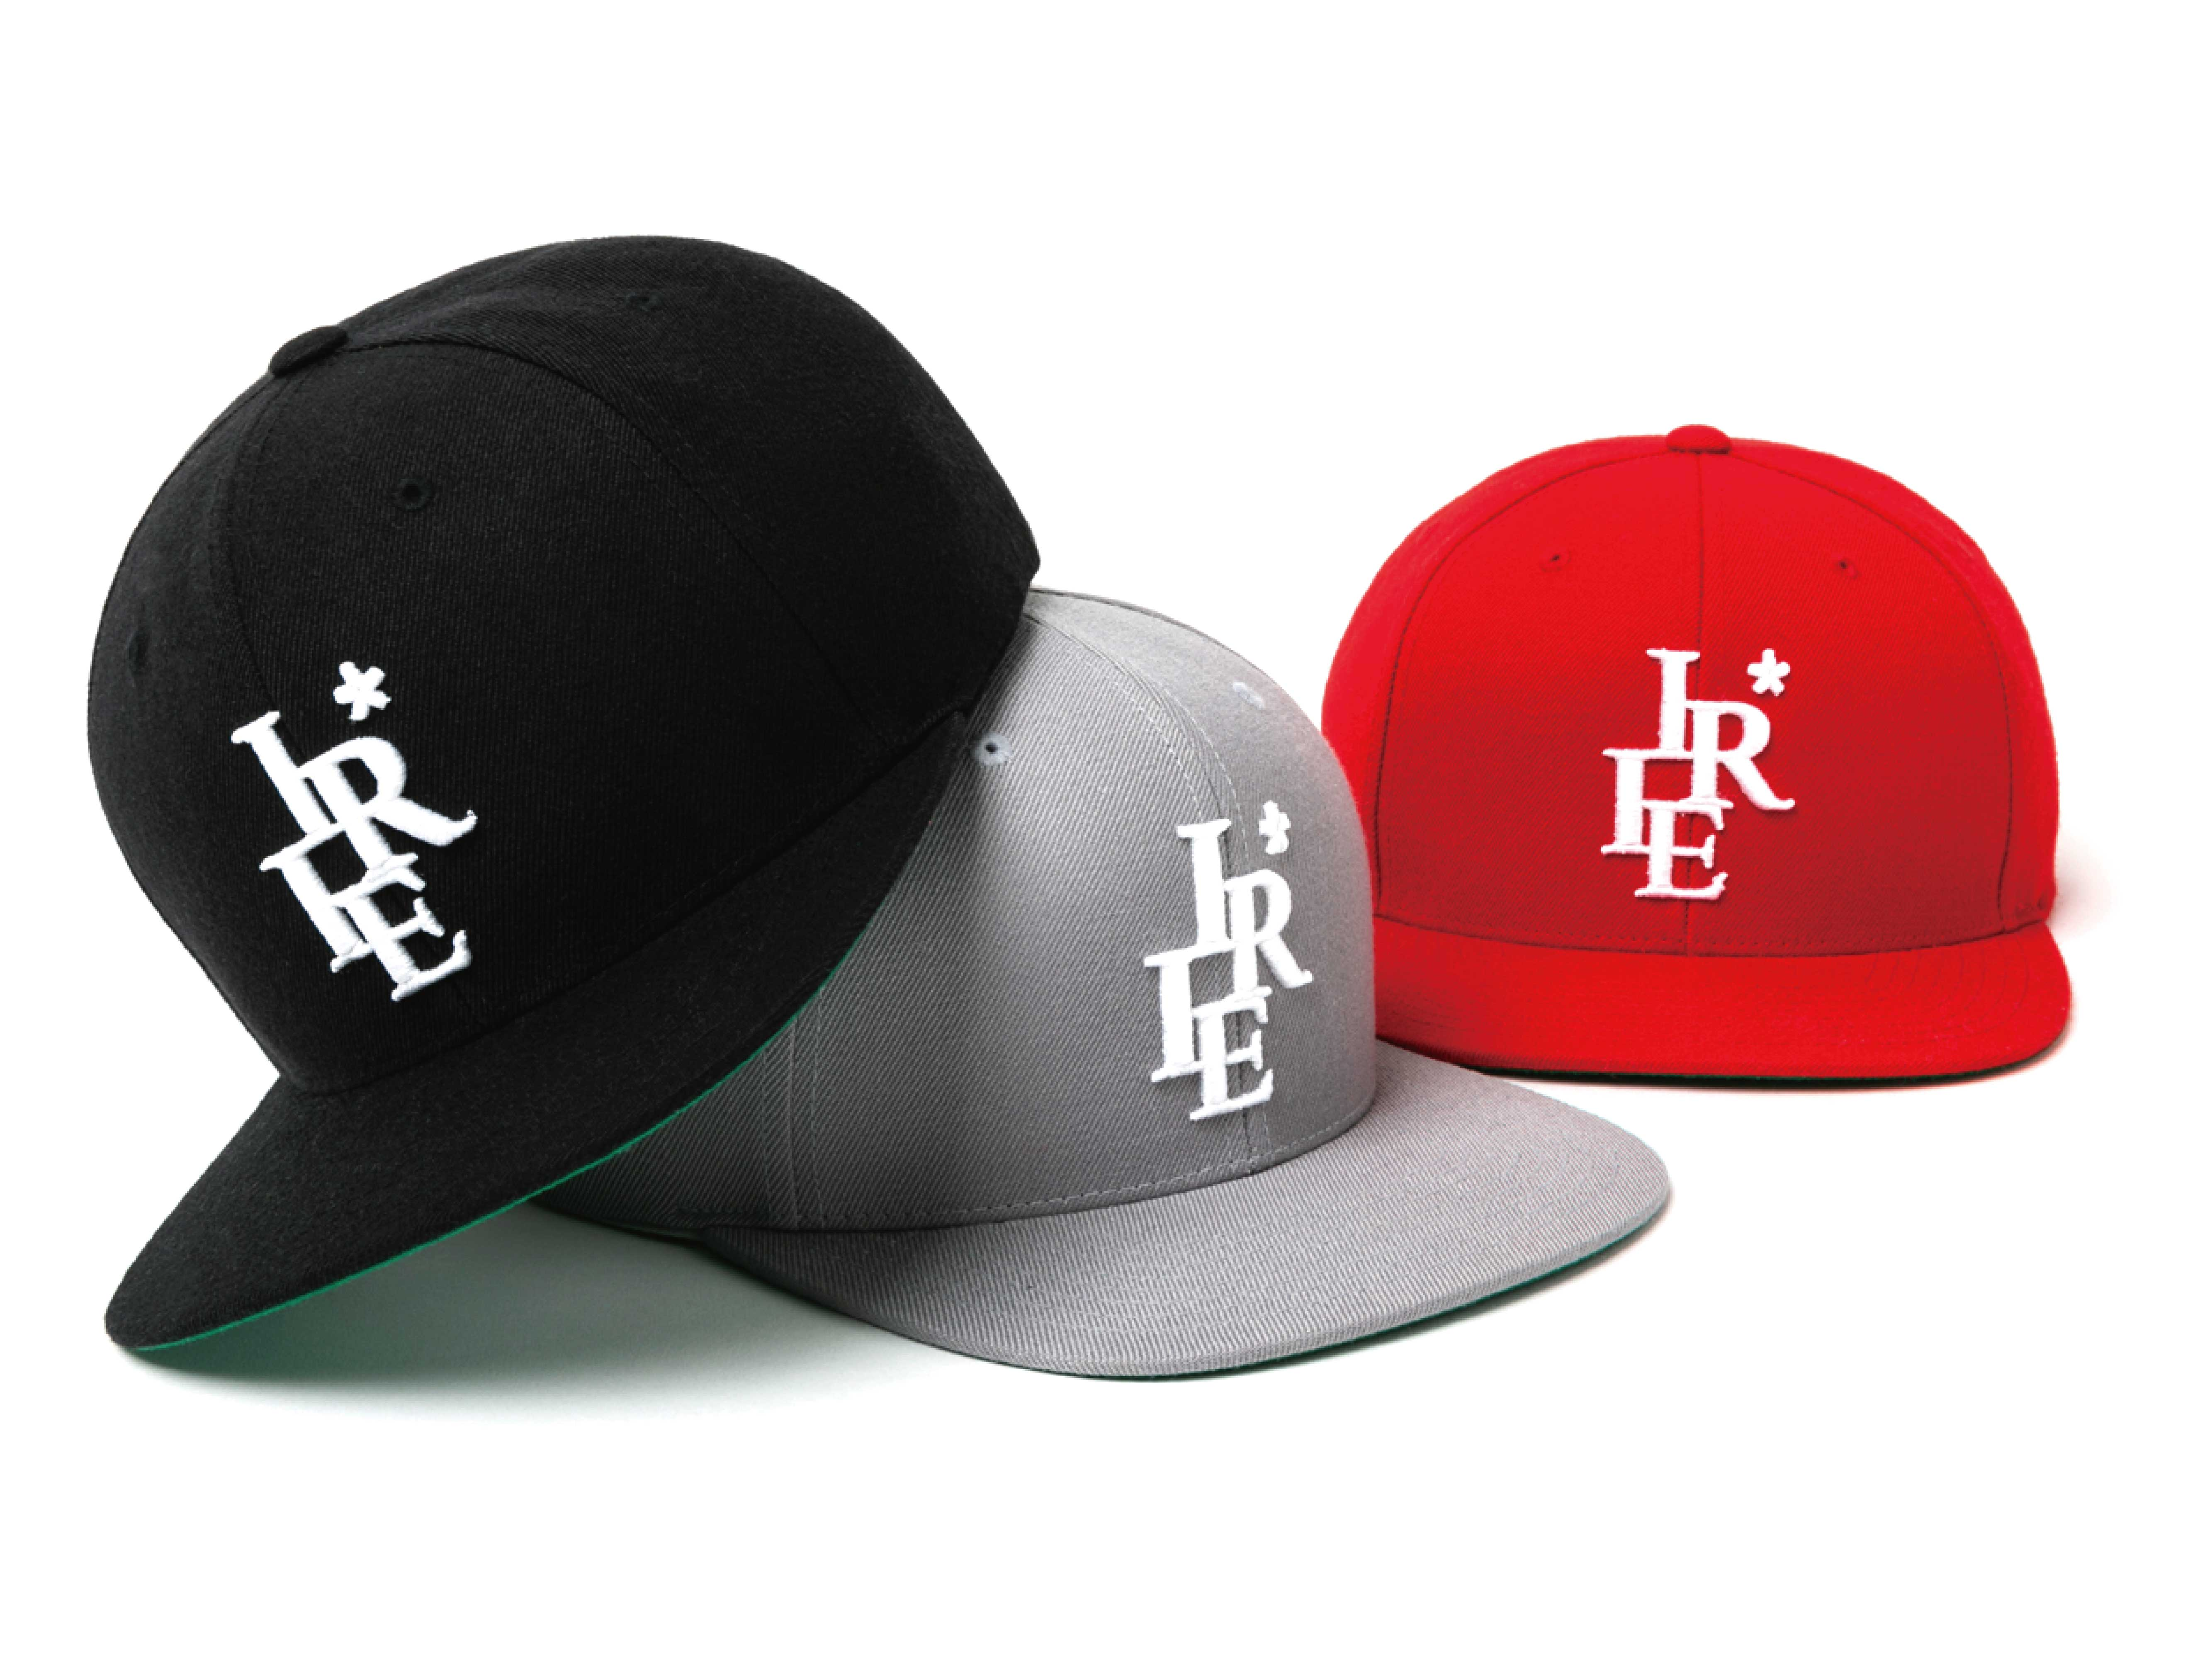 IRIE STACK LOGO CAP - IRIE by irielife